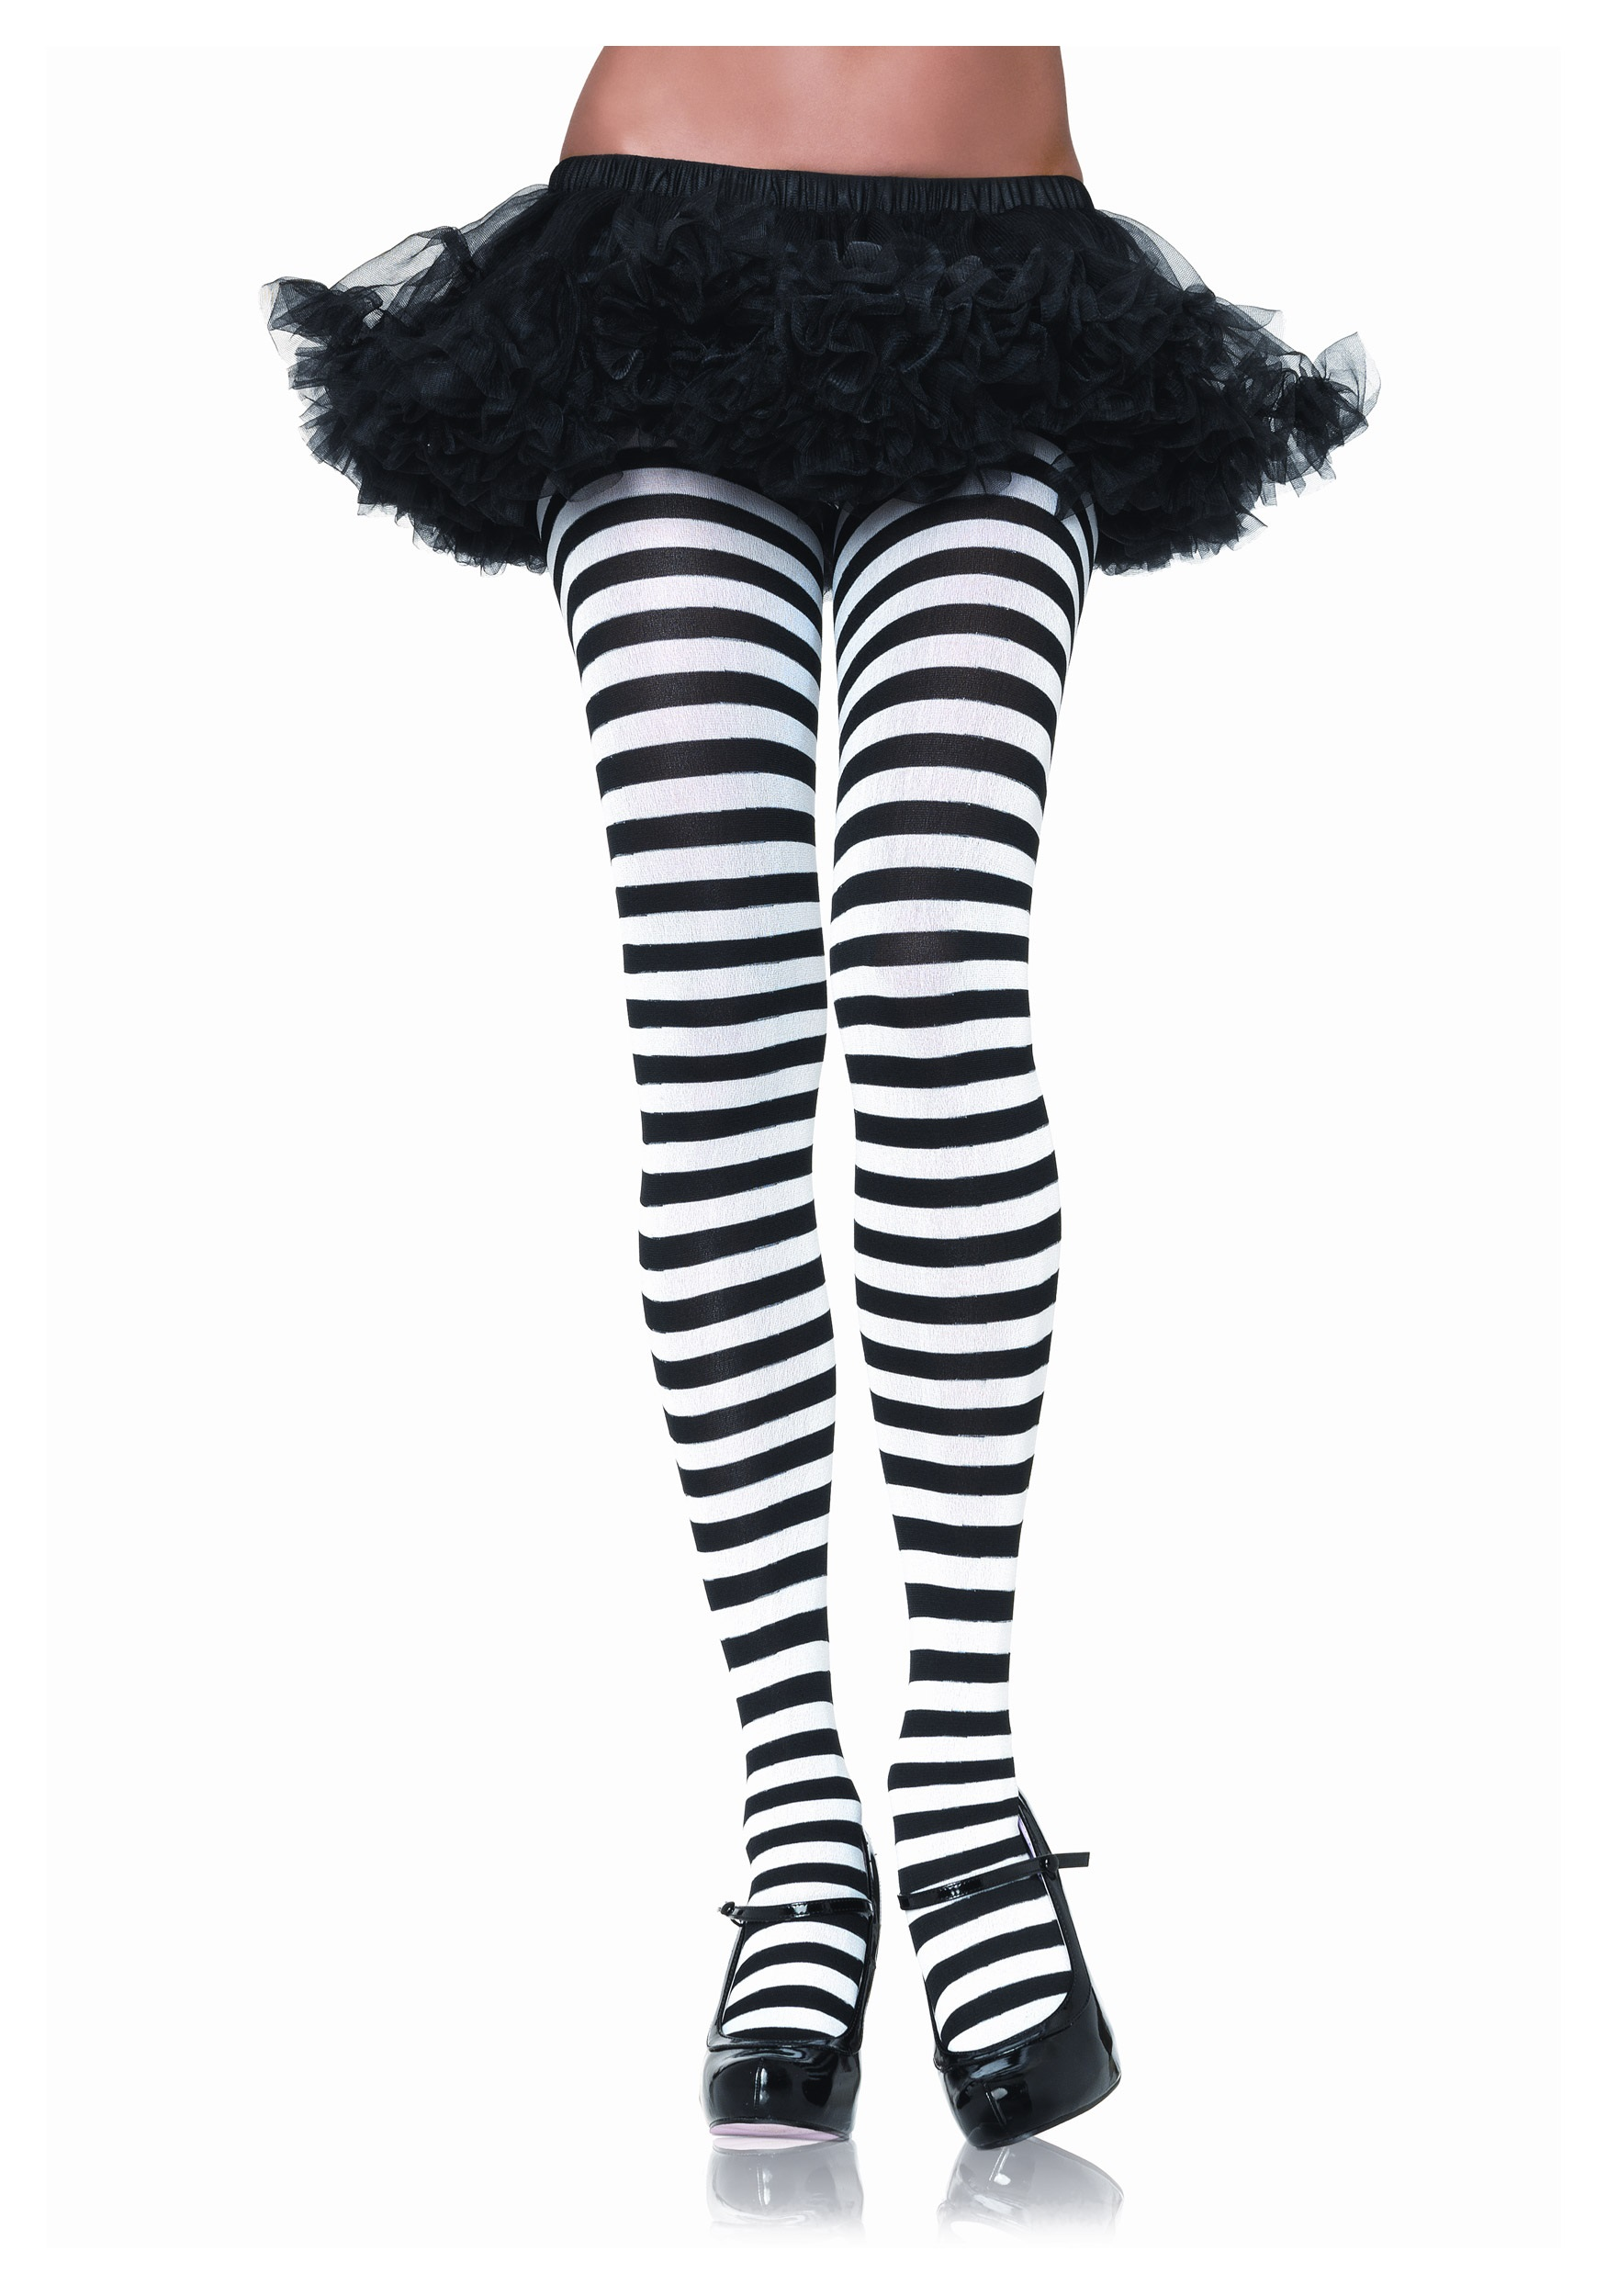 6fc271f6776ee Black & White Striped Tights - Halloween Costumes